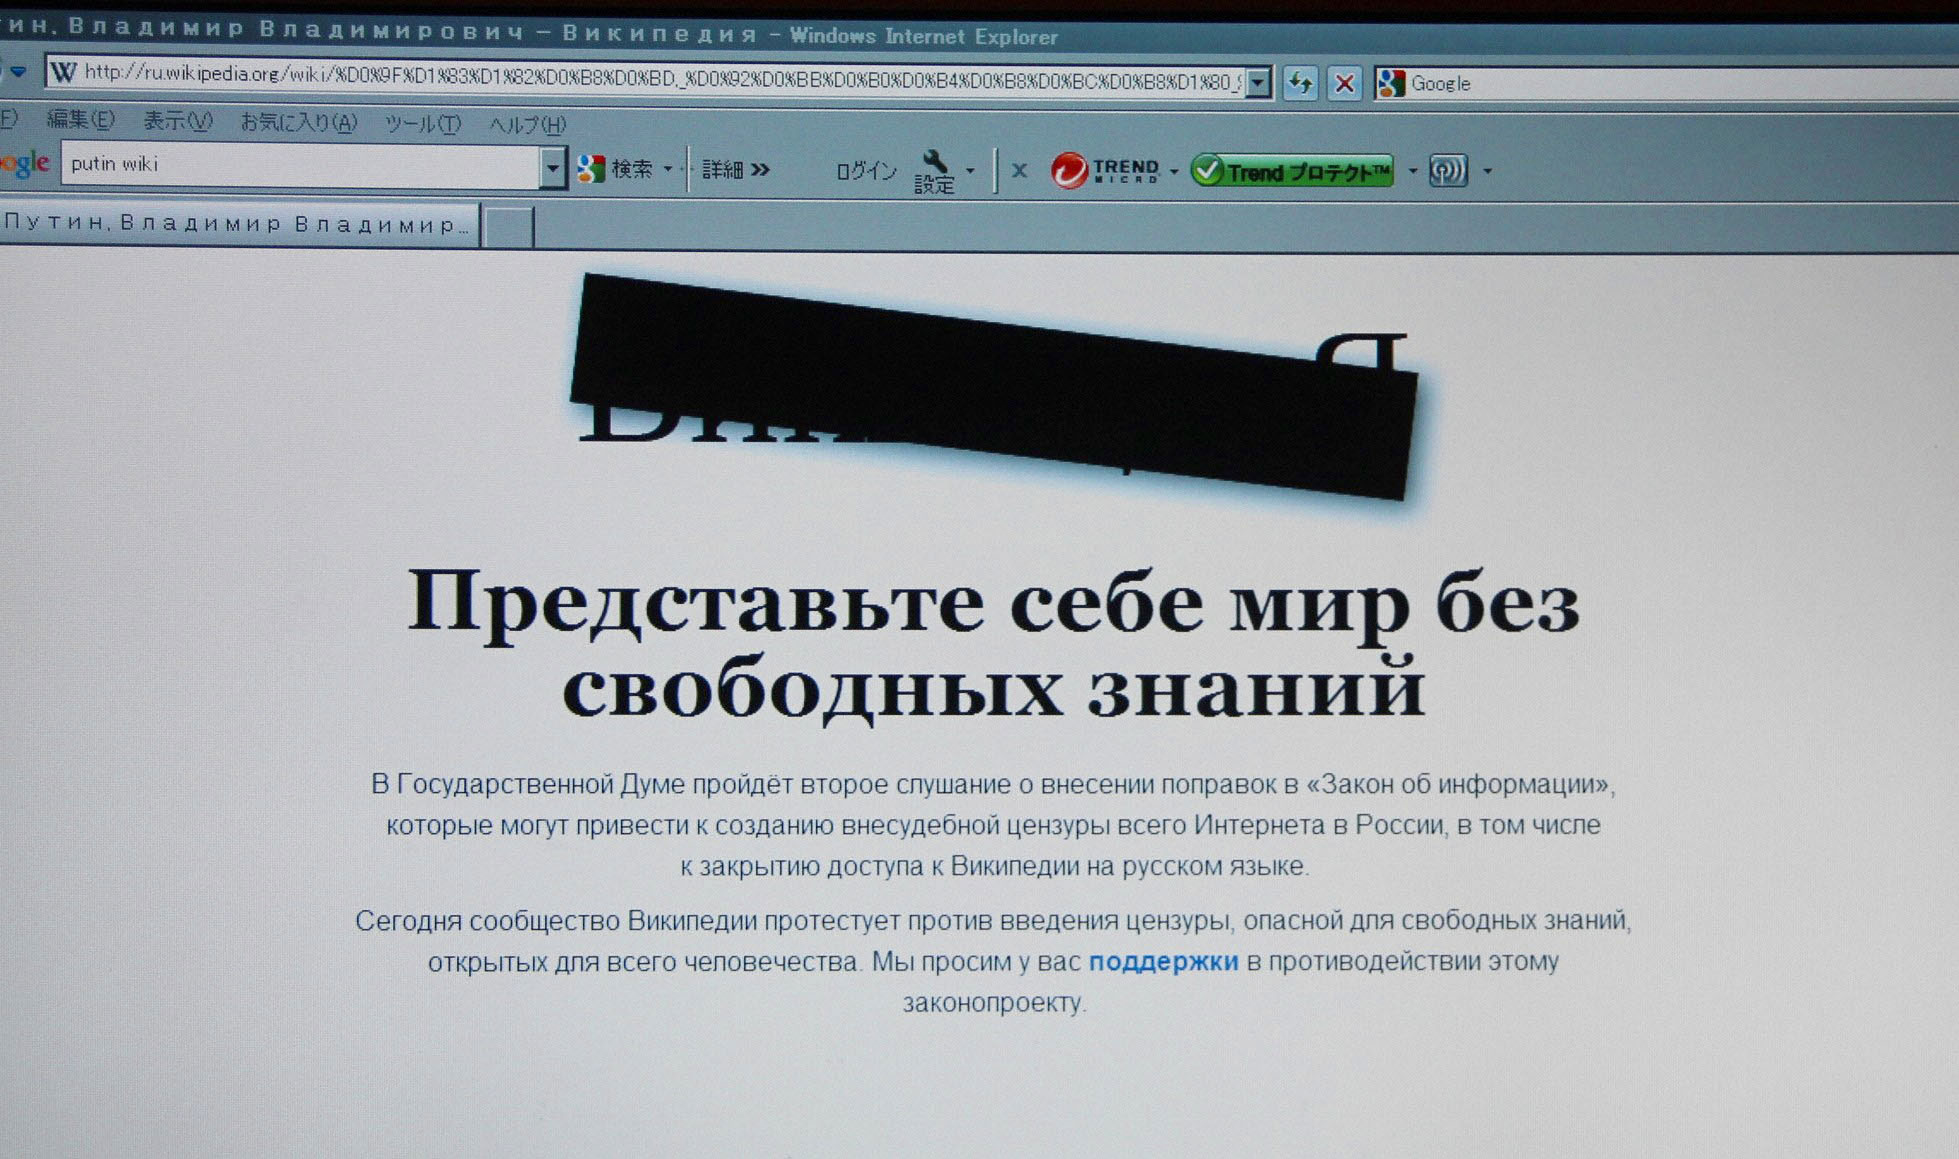 The Russian-language site of the free encyclopedia Wikipedia, which shut down the site in protest of a Russian bill to tighten control over the Internet.